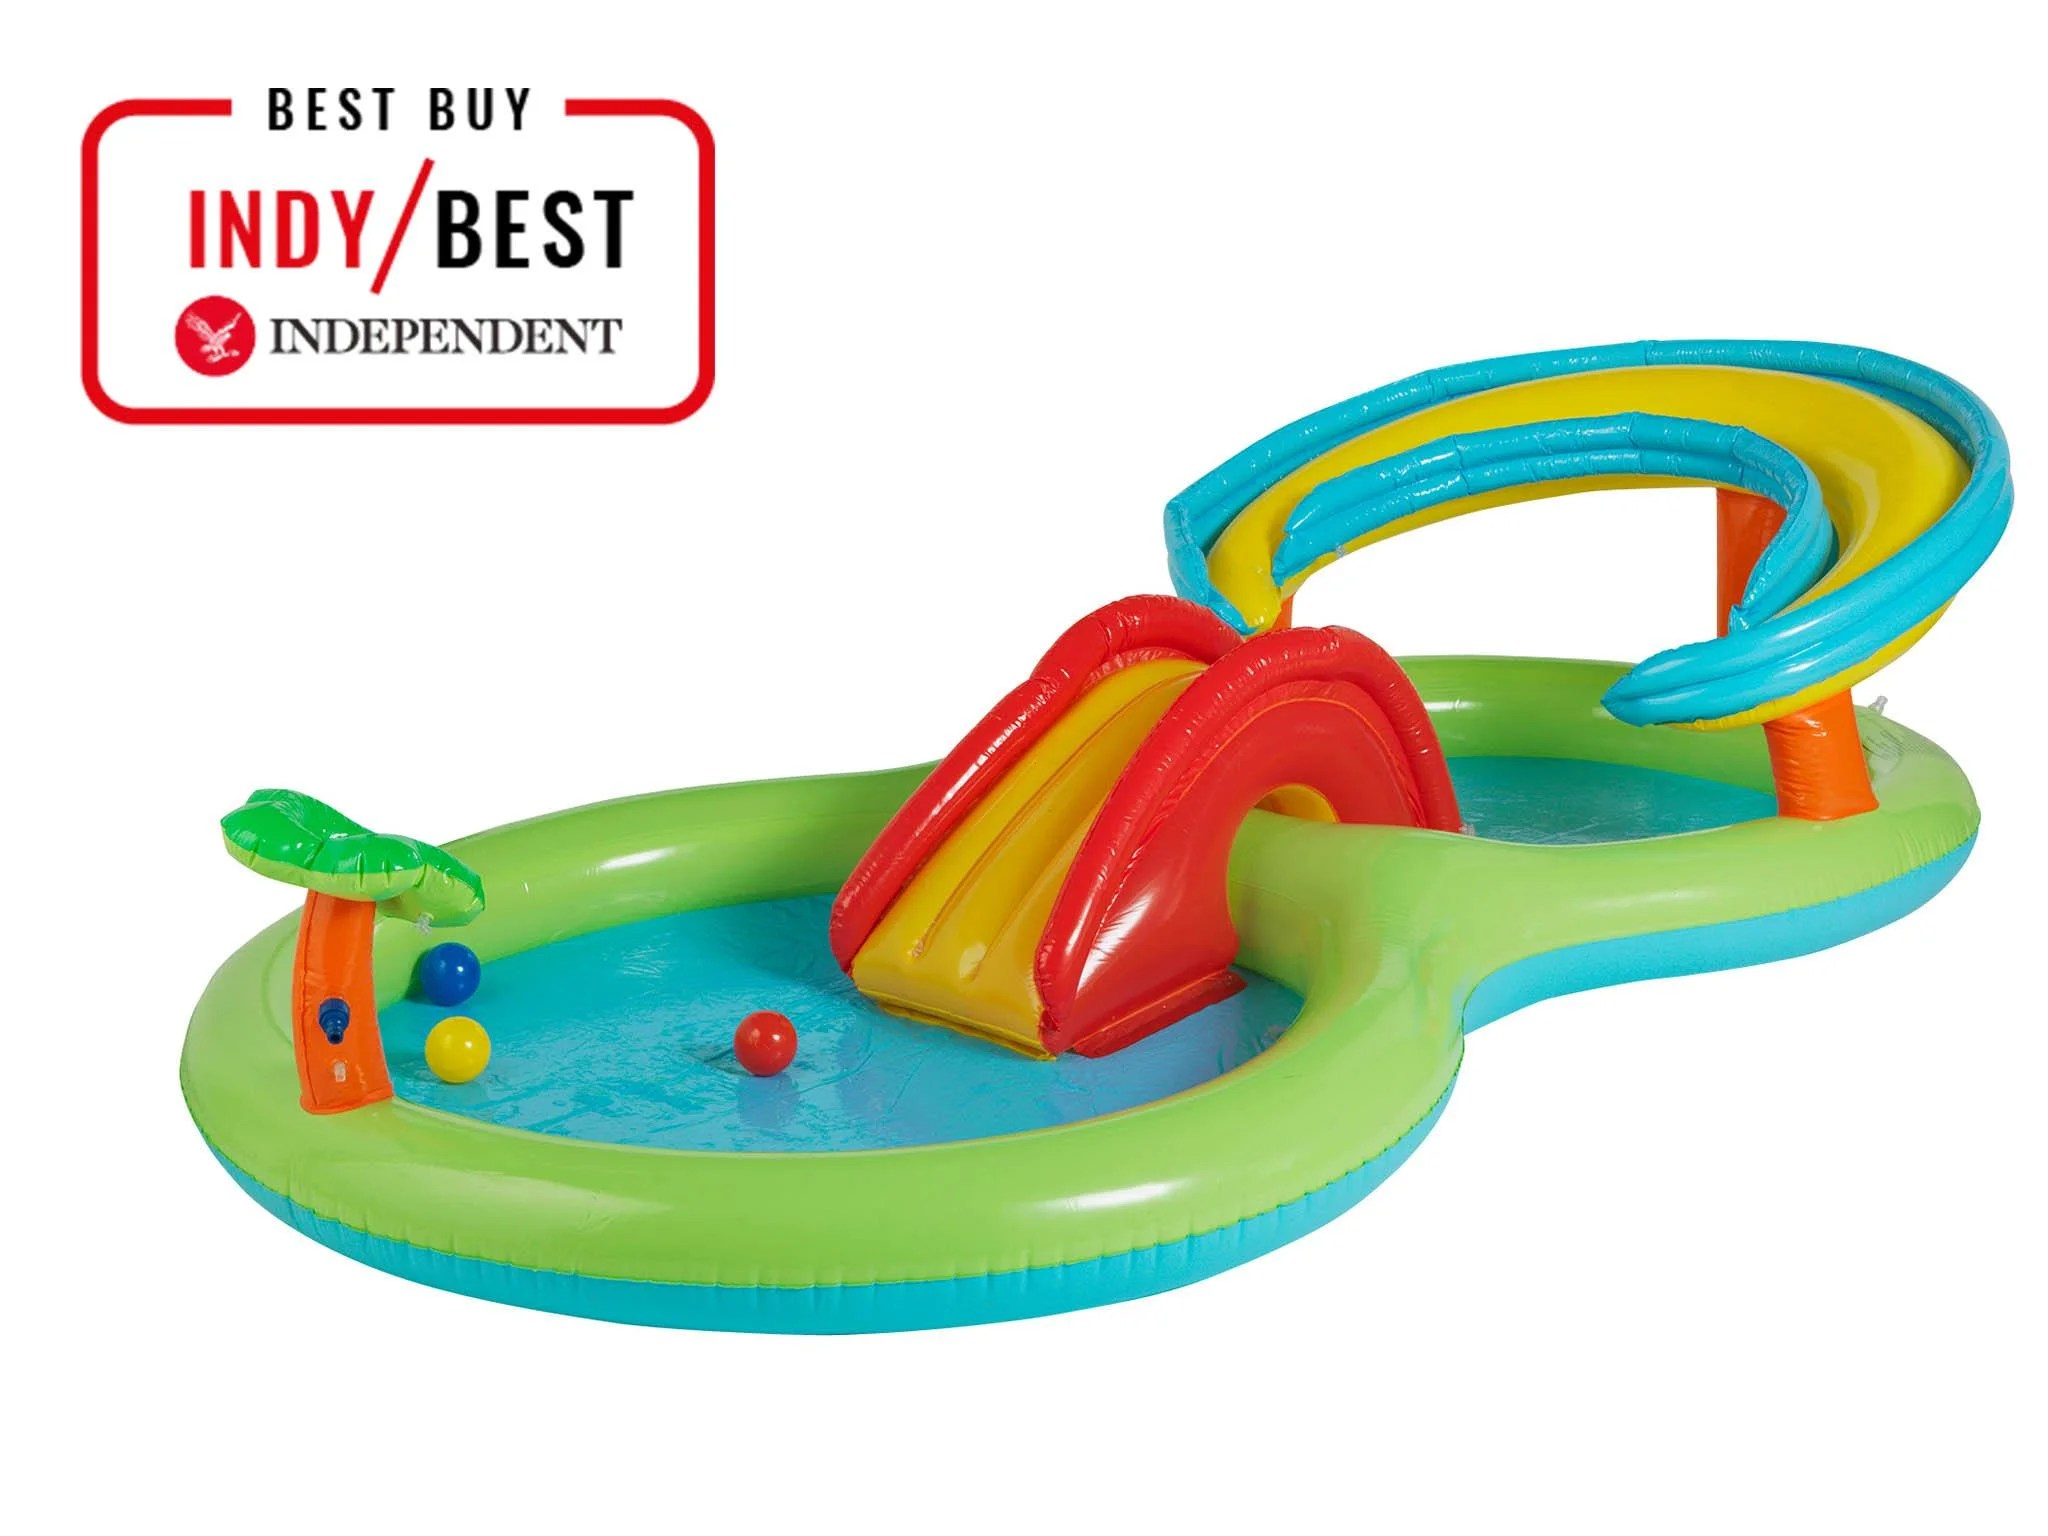 Intex Vs Bestway Review Best Paddling Pool Choose From Models With Slides Seats